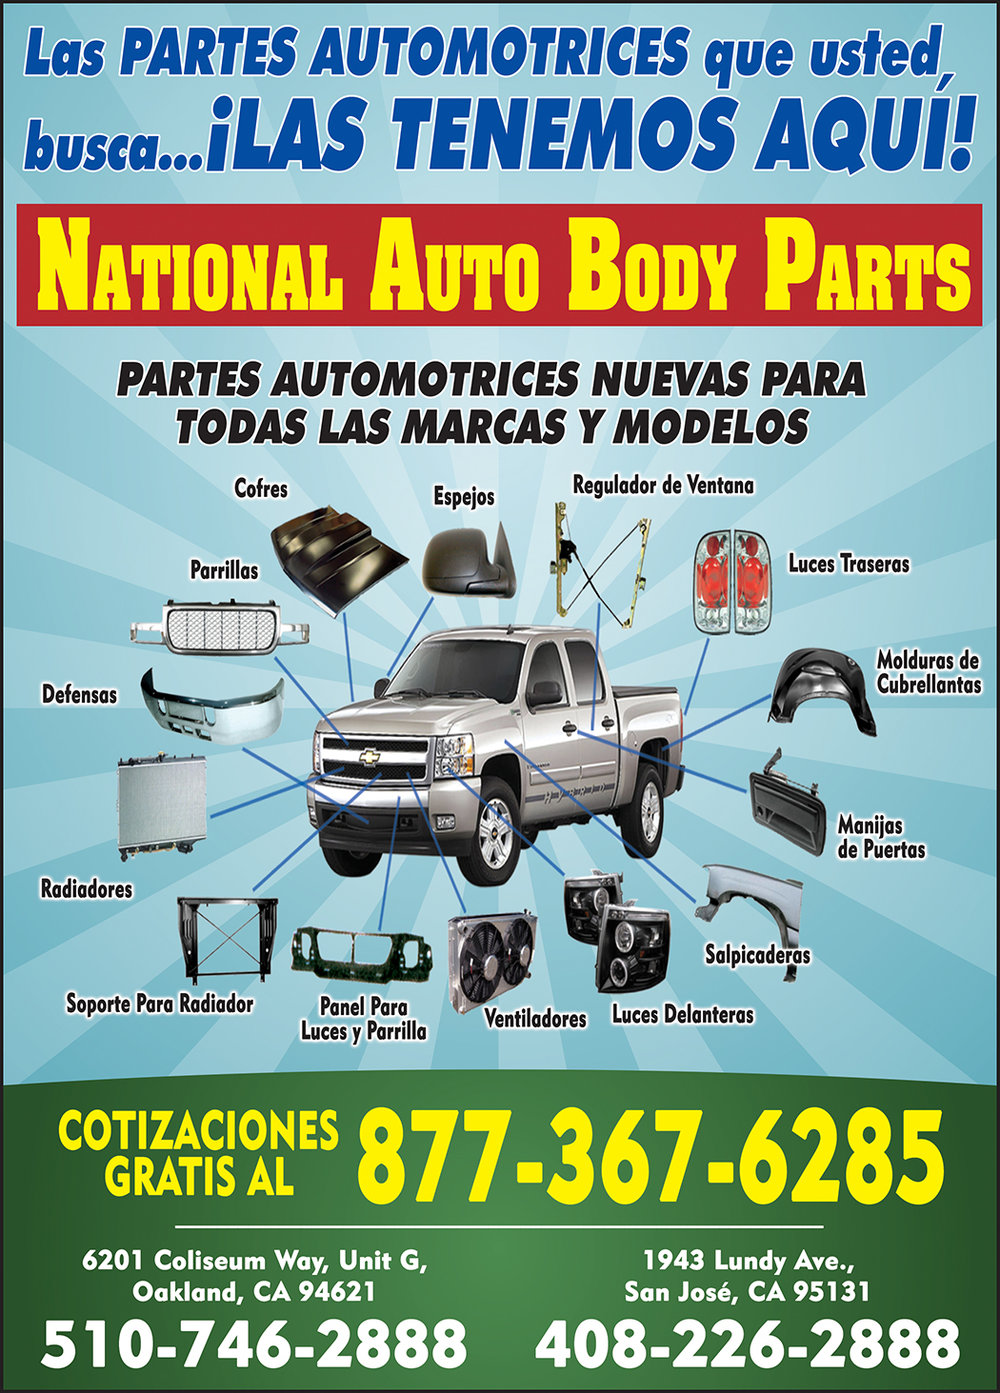 National Auto Body Parts 1 PAG Agosto 2018.jpg